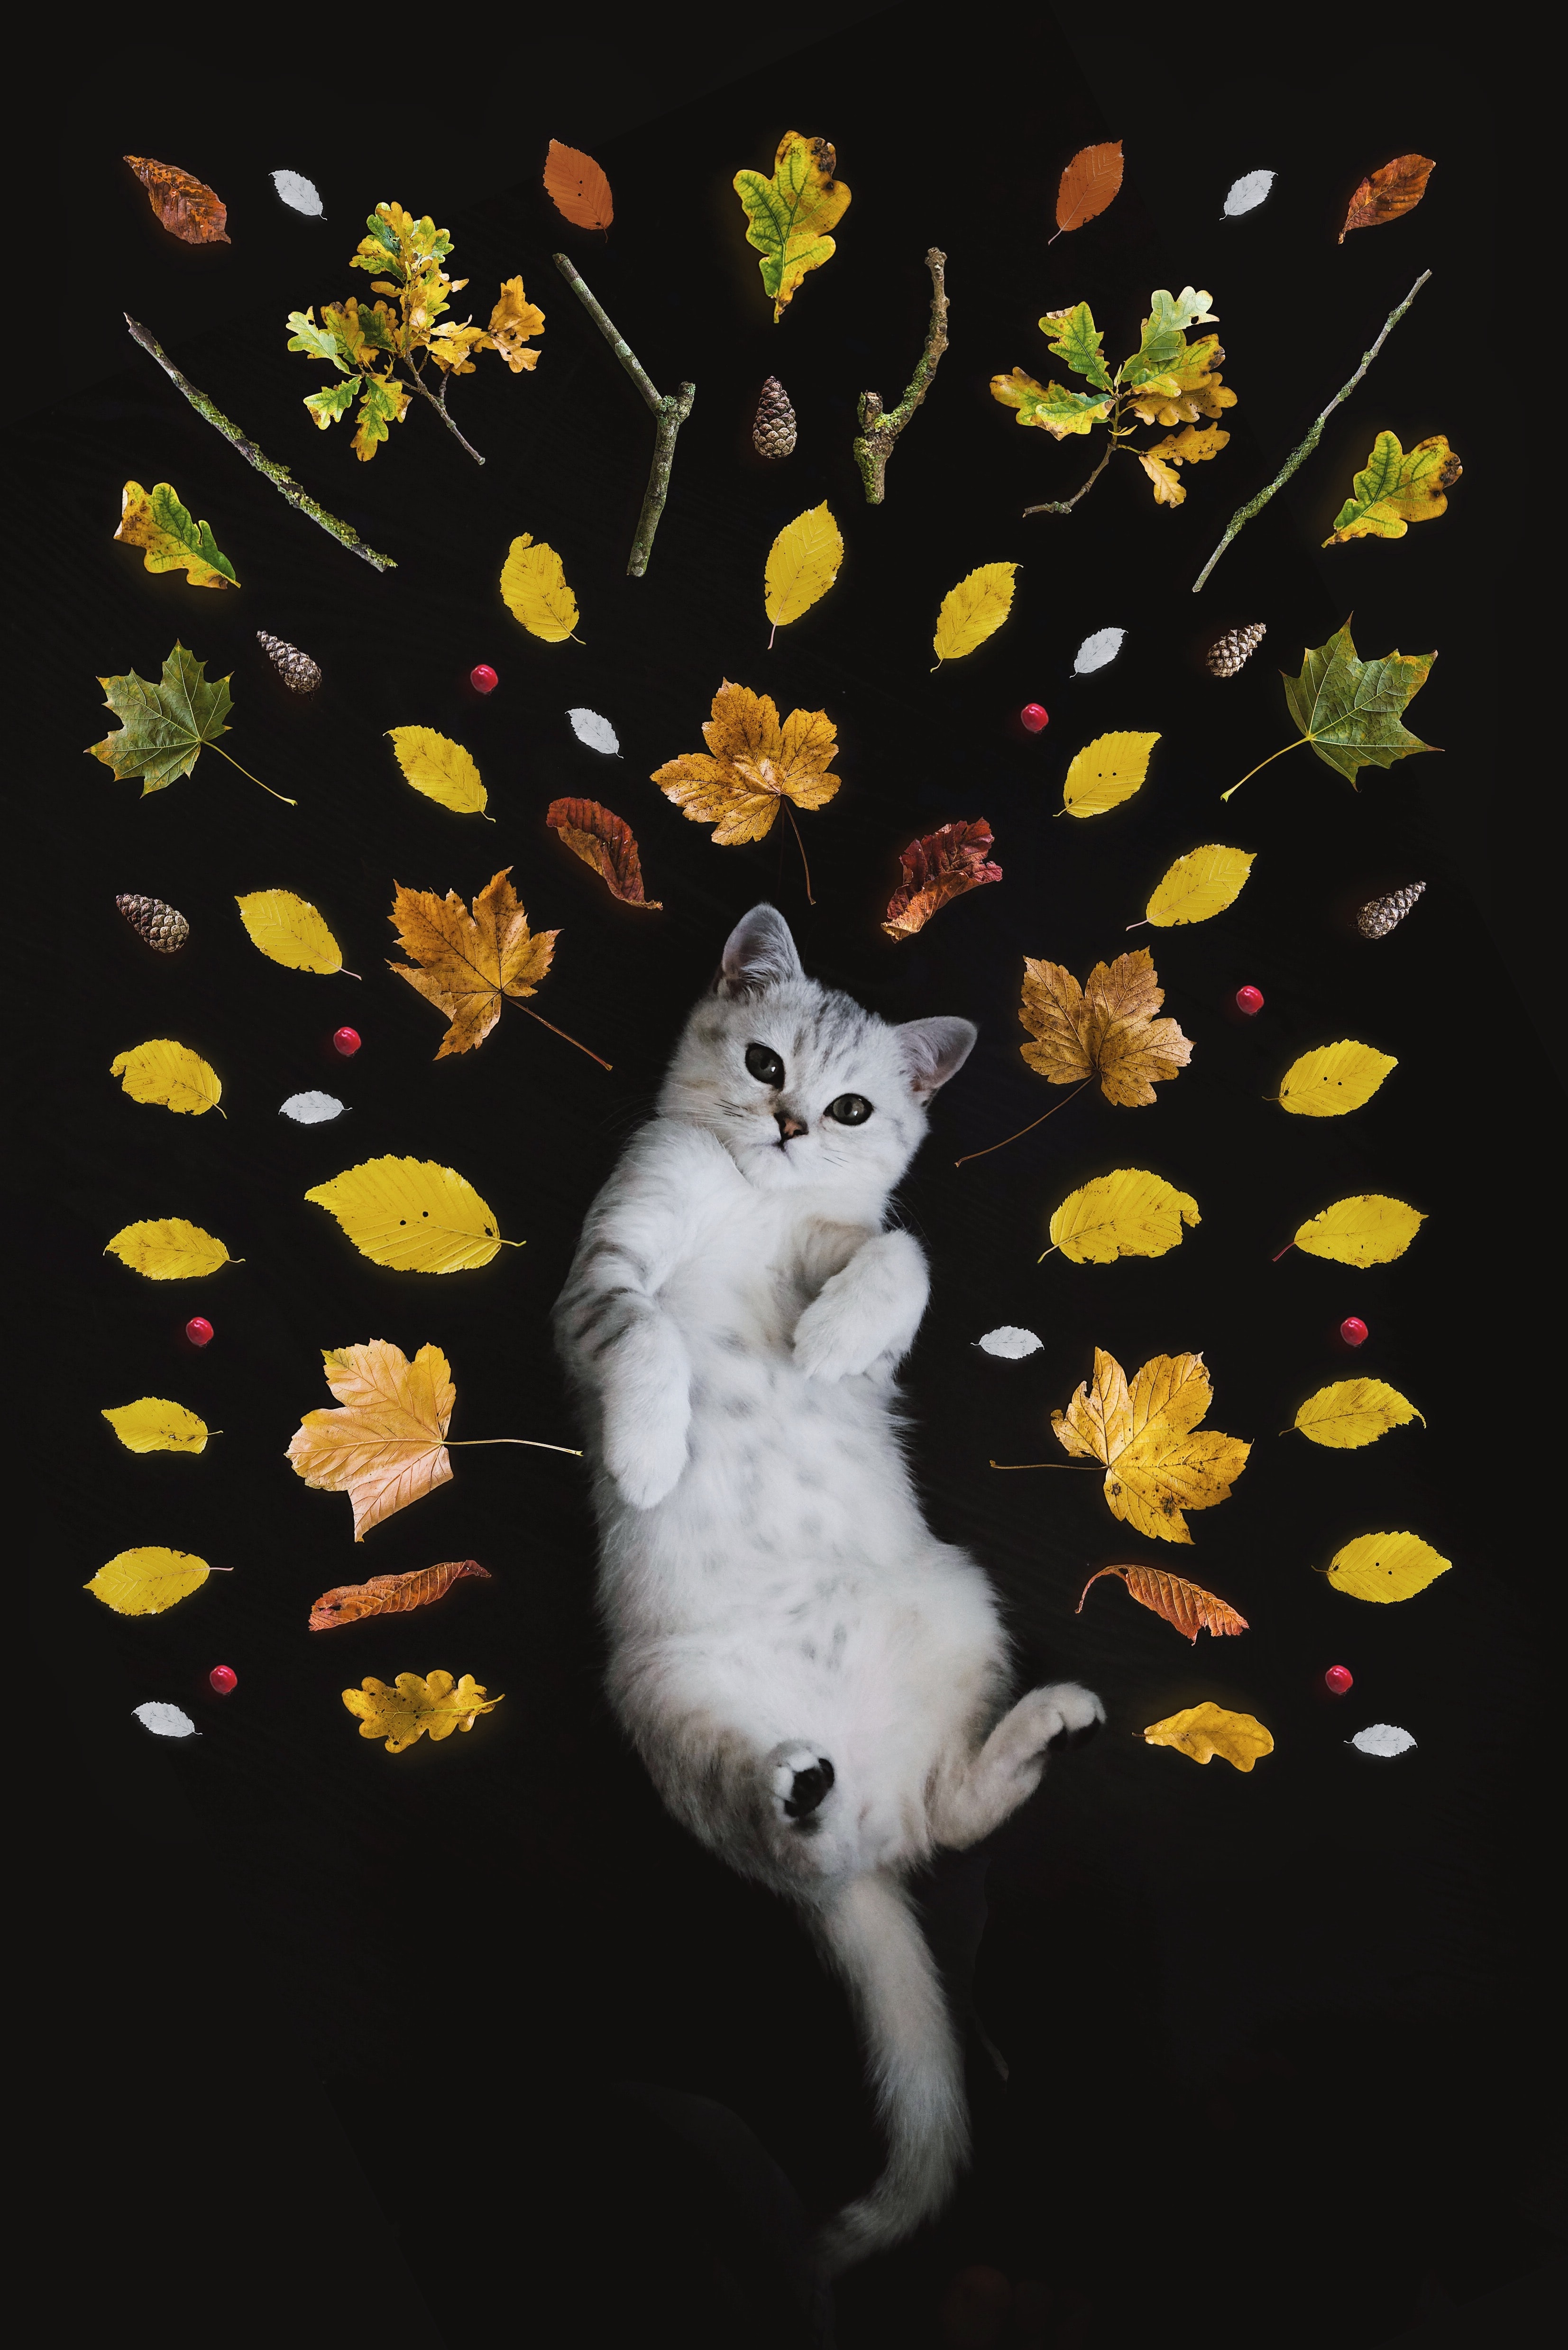 White domestic cat lying on back surrounded by multicolored leaves, twigs and berries as artwork